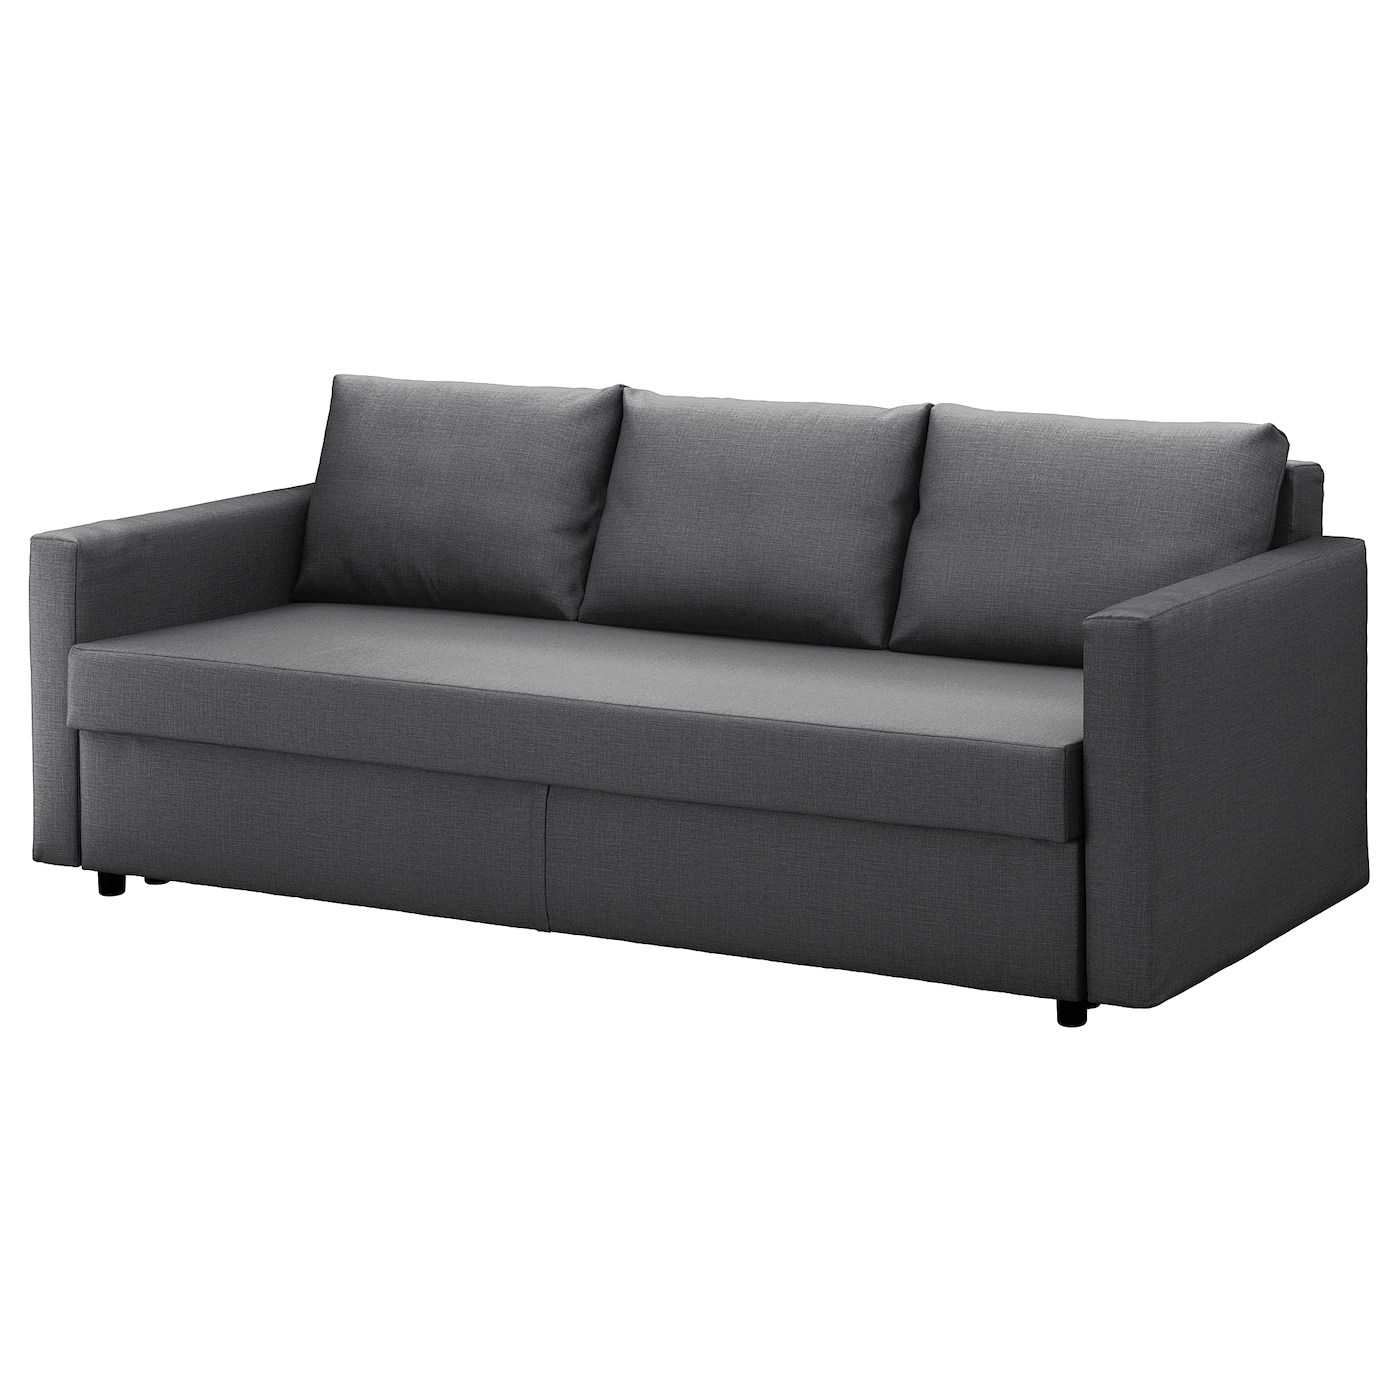 Bettsofa Askeby Corner Sofa Beds Futons Chair Beds Ikea